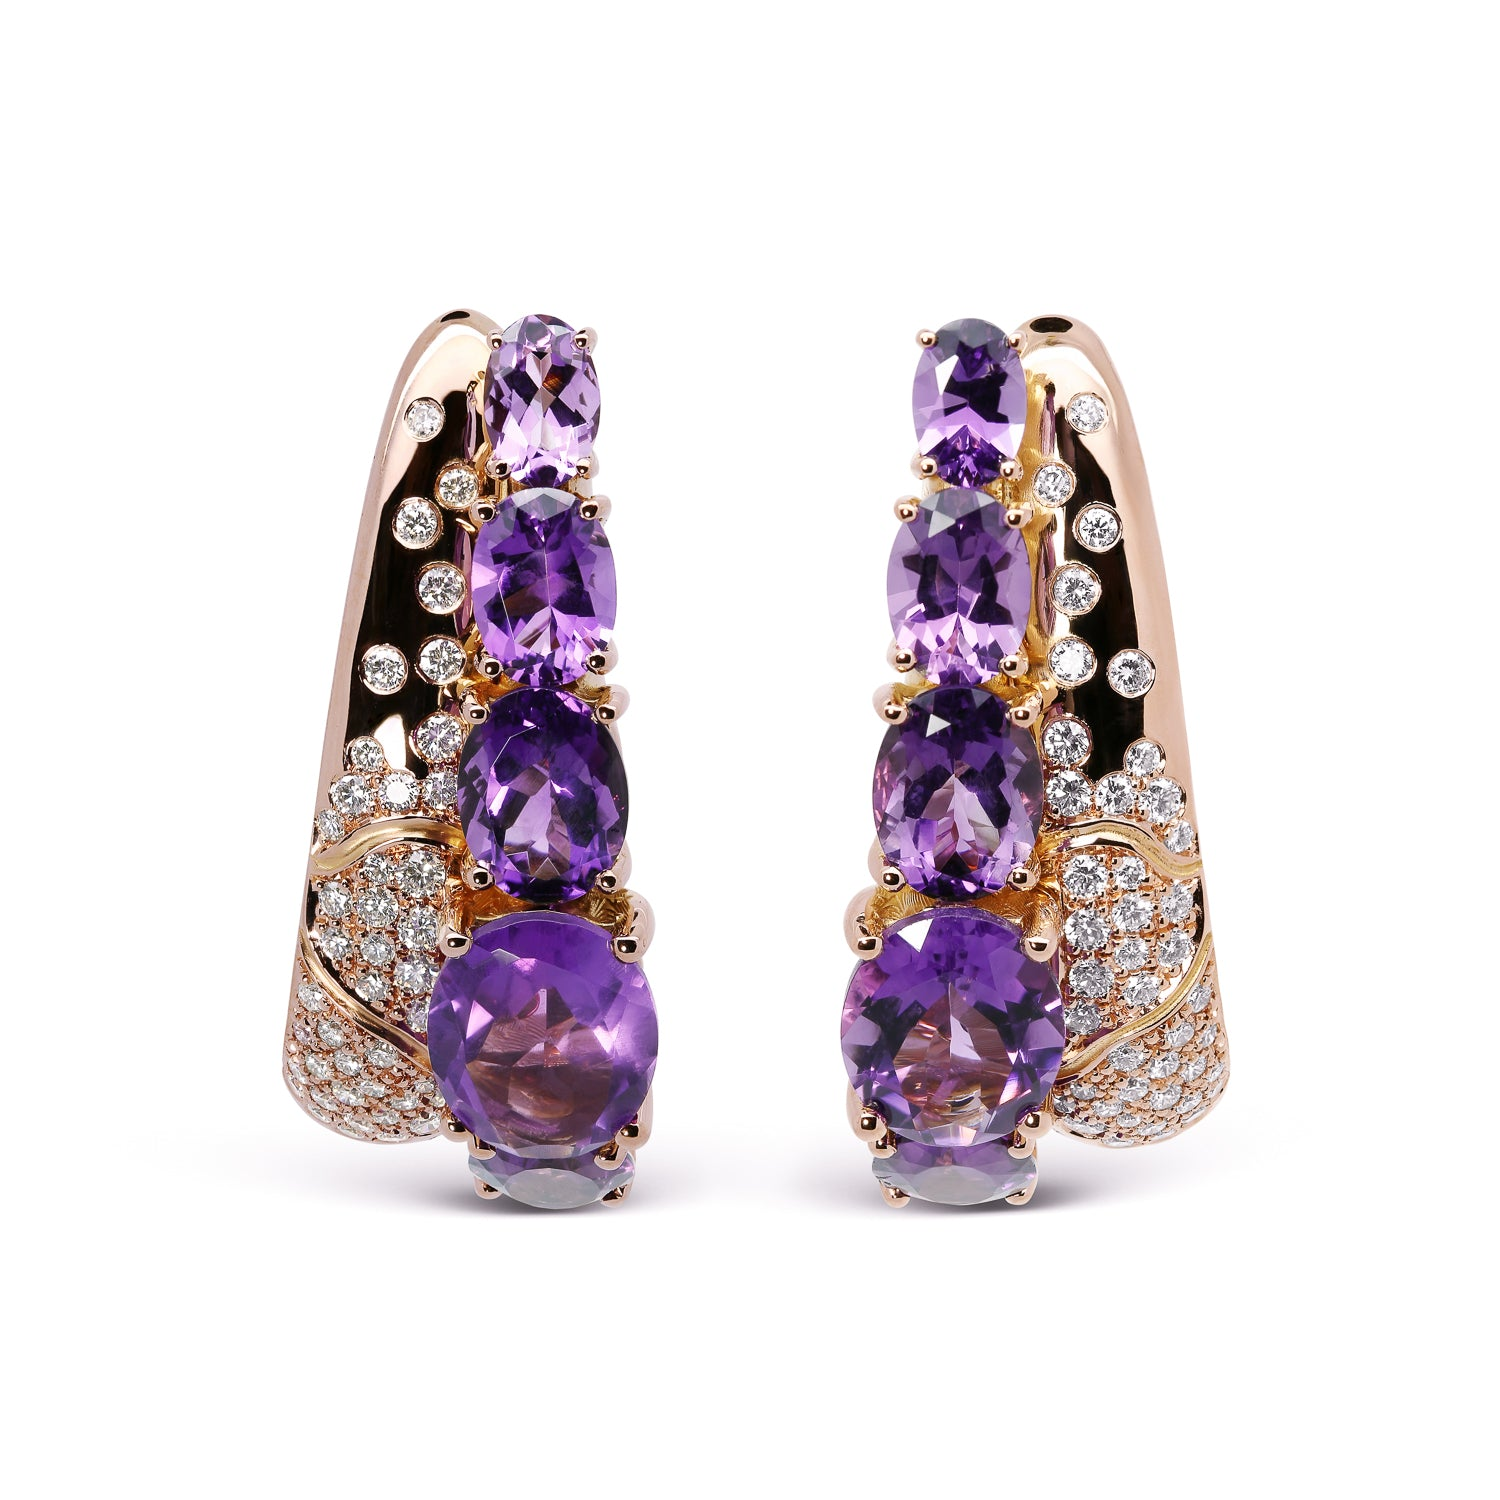 Bespoke earrings - amethyst, rose gold and diamonds